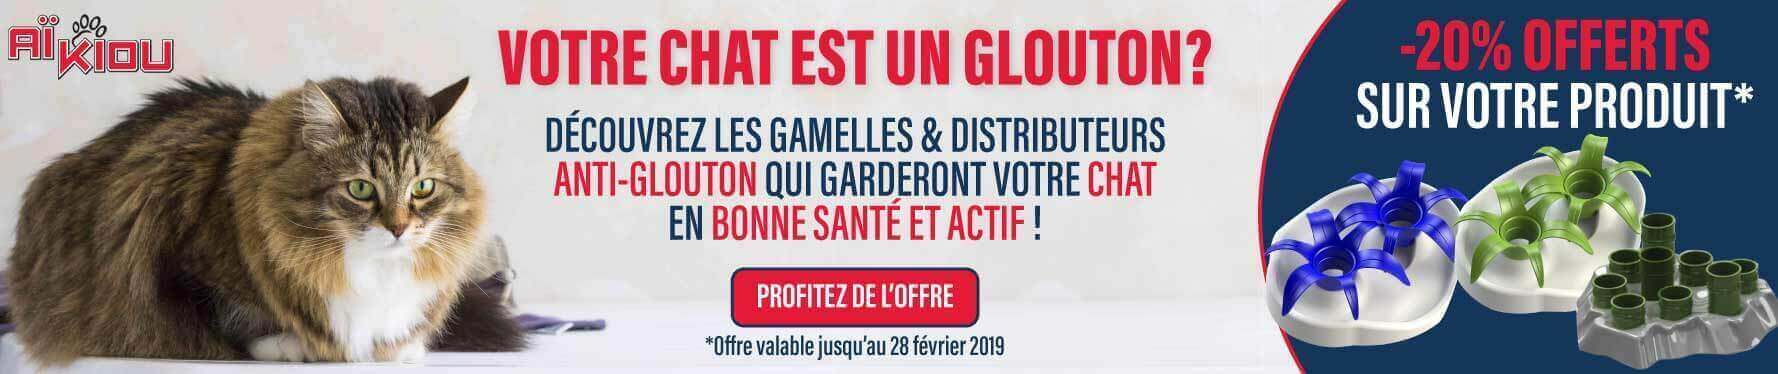 Chat glouton : on a la solution avec les gamelles Aïkiou